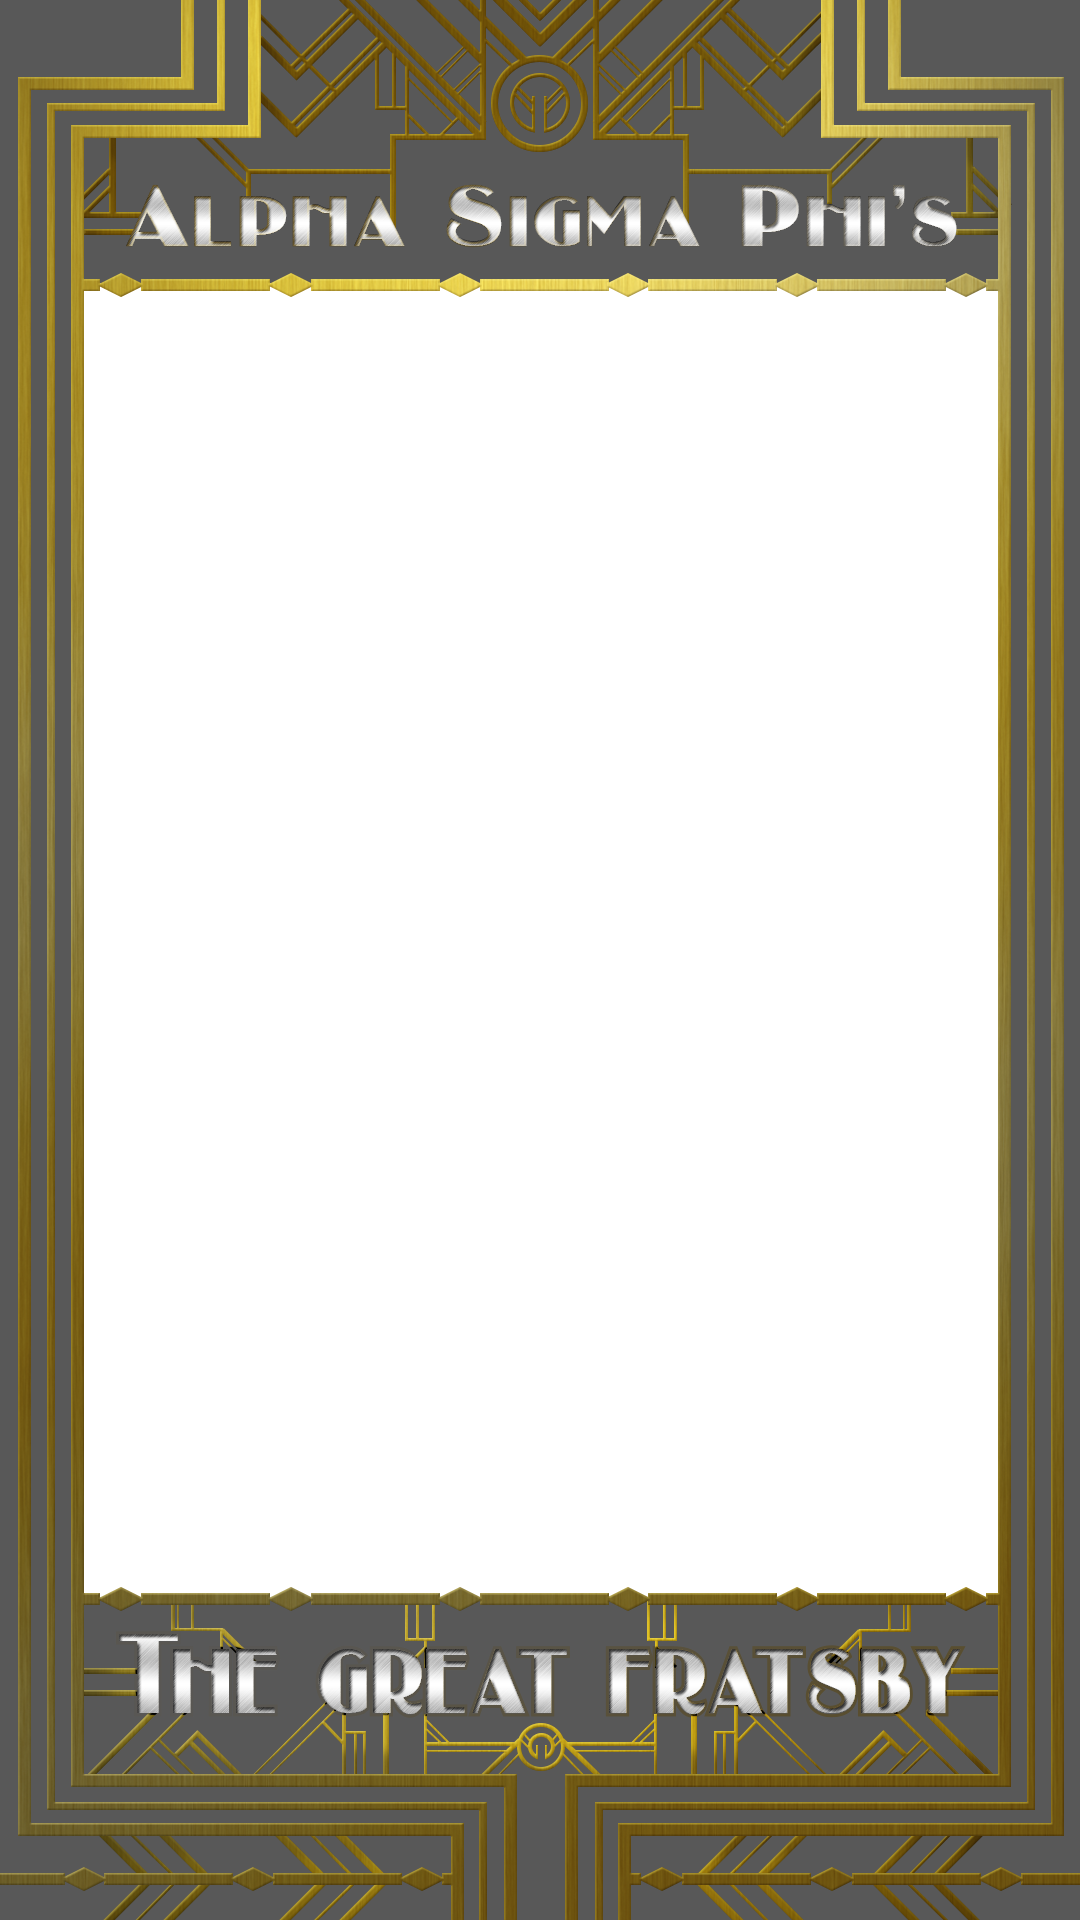 AlphaSig_Formal_Geofilter.png